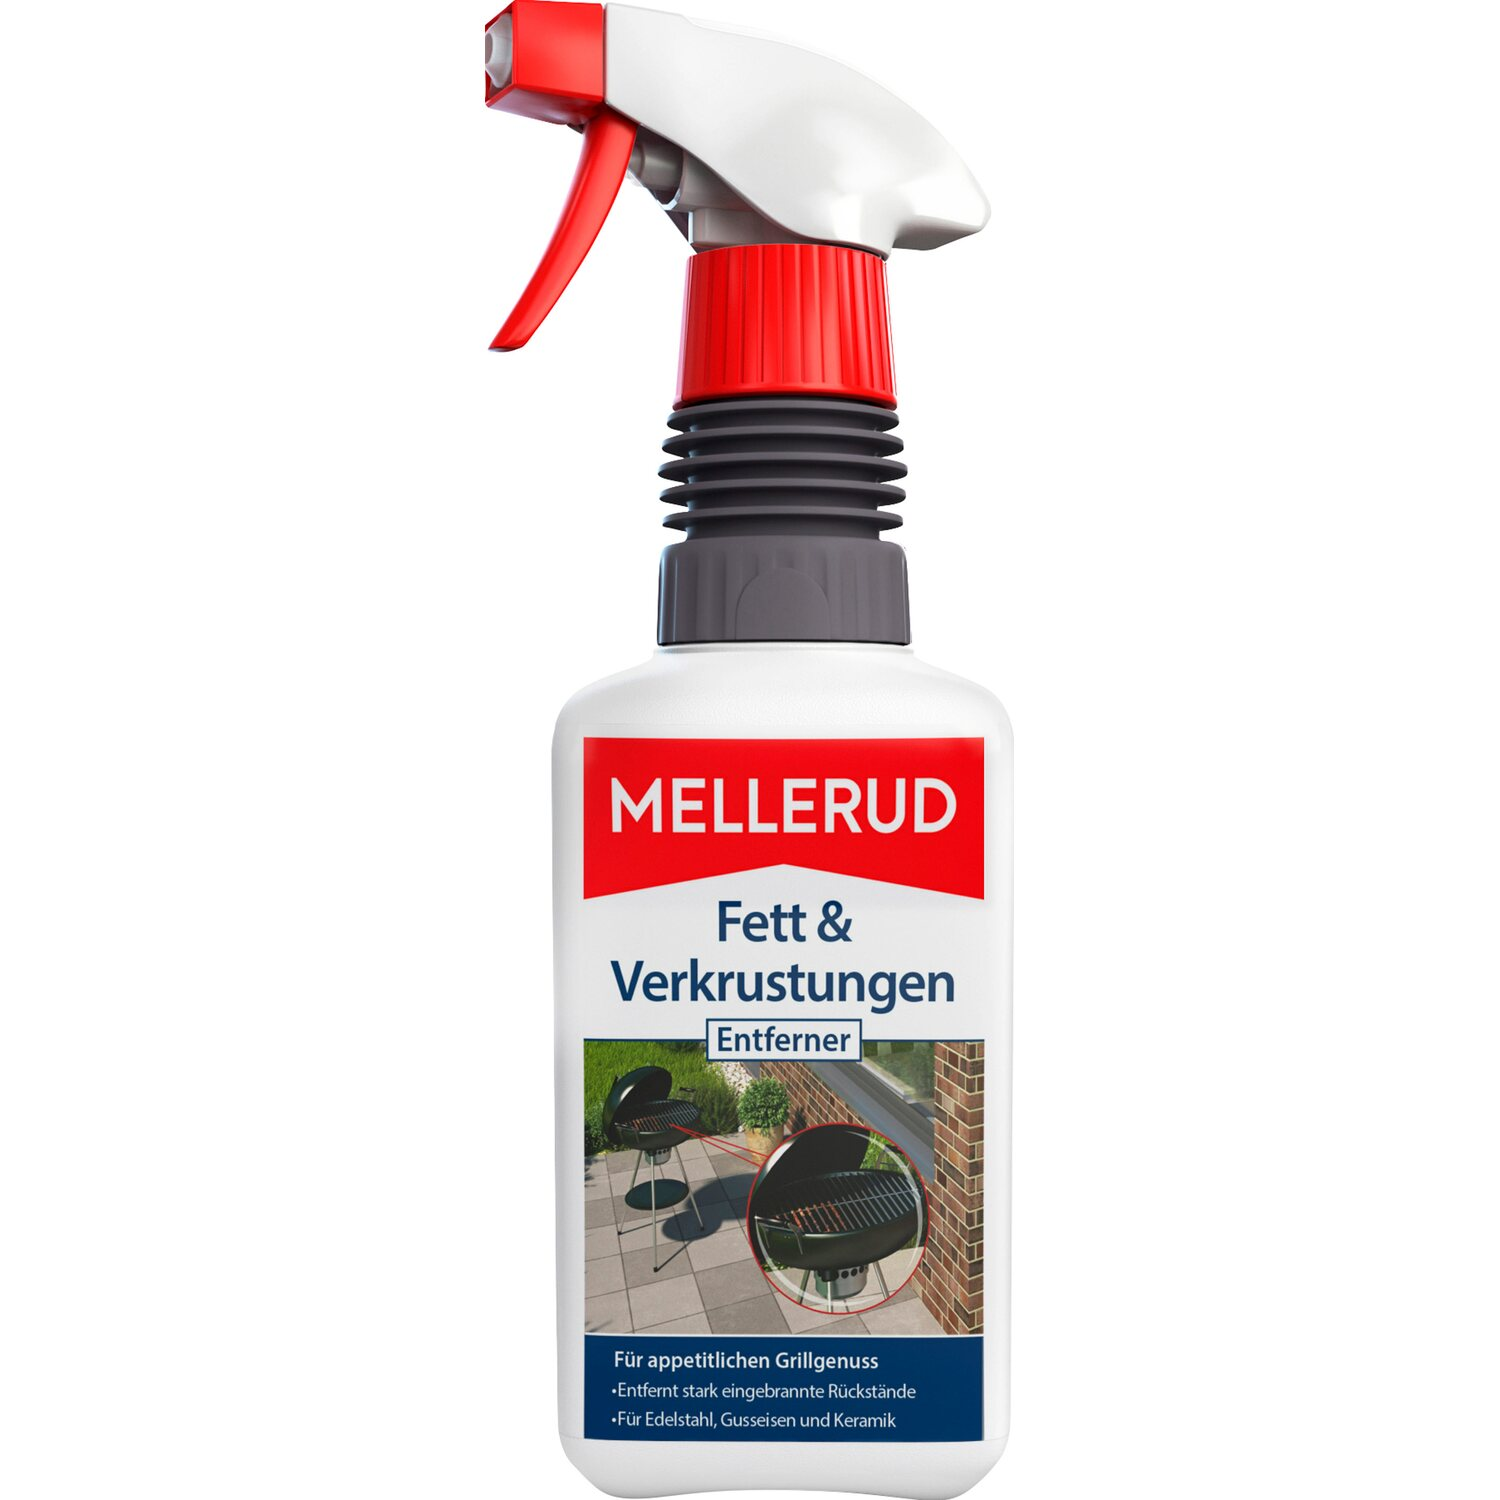 Mellerud Grillrost-Reiniger 0,5 l